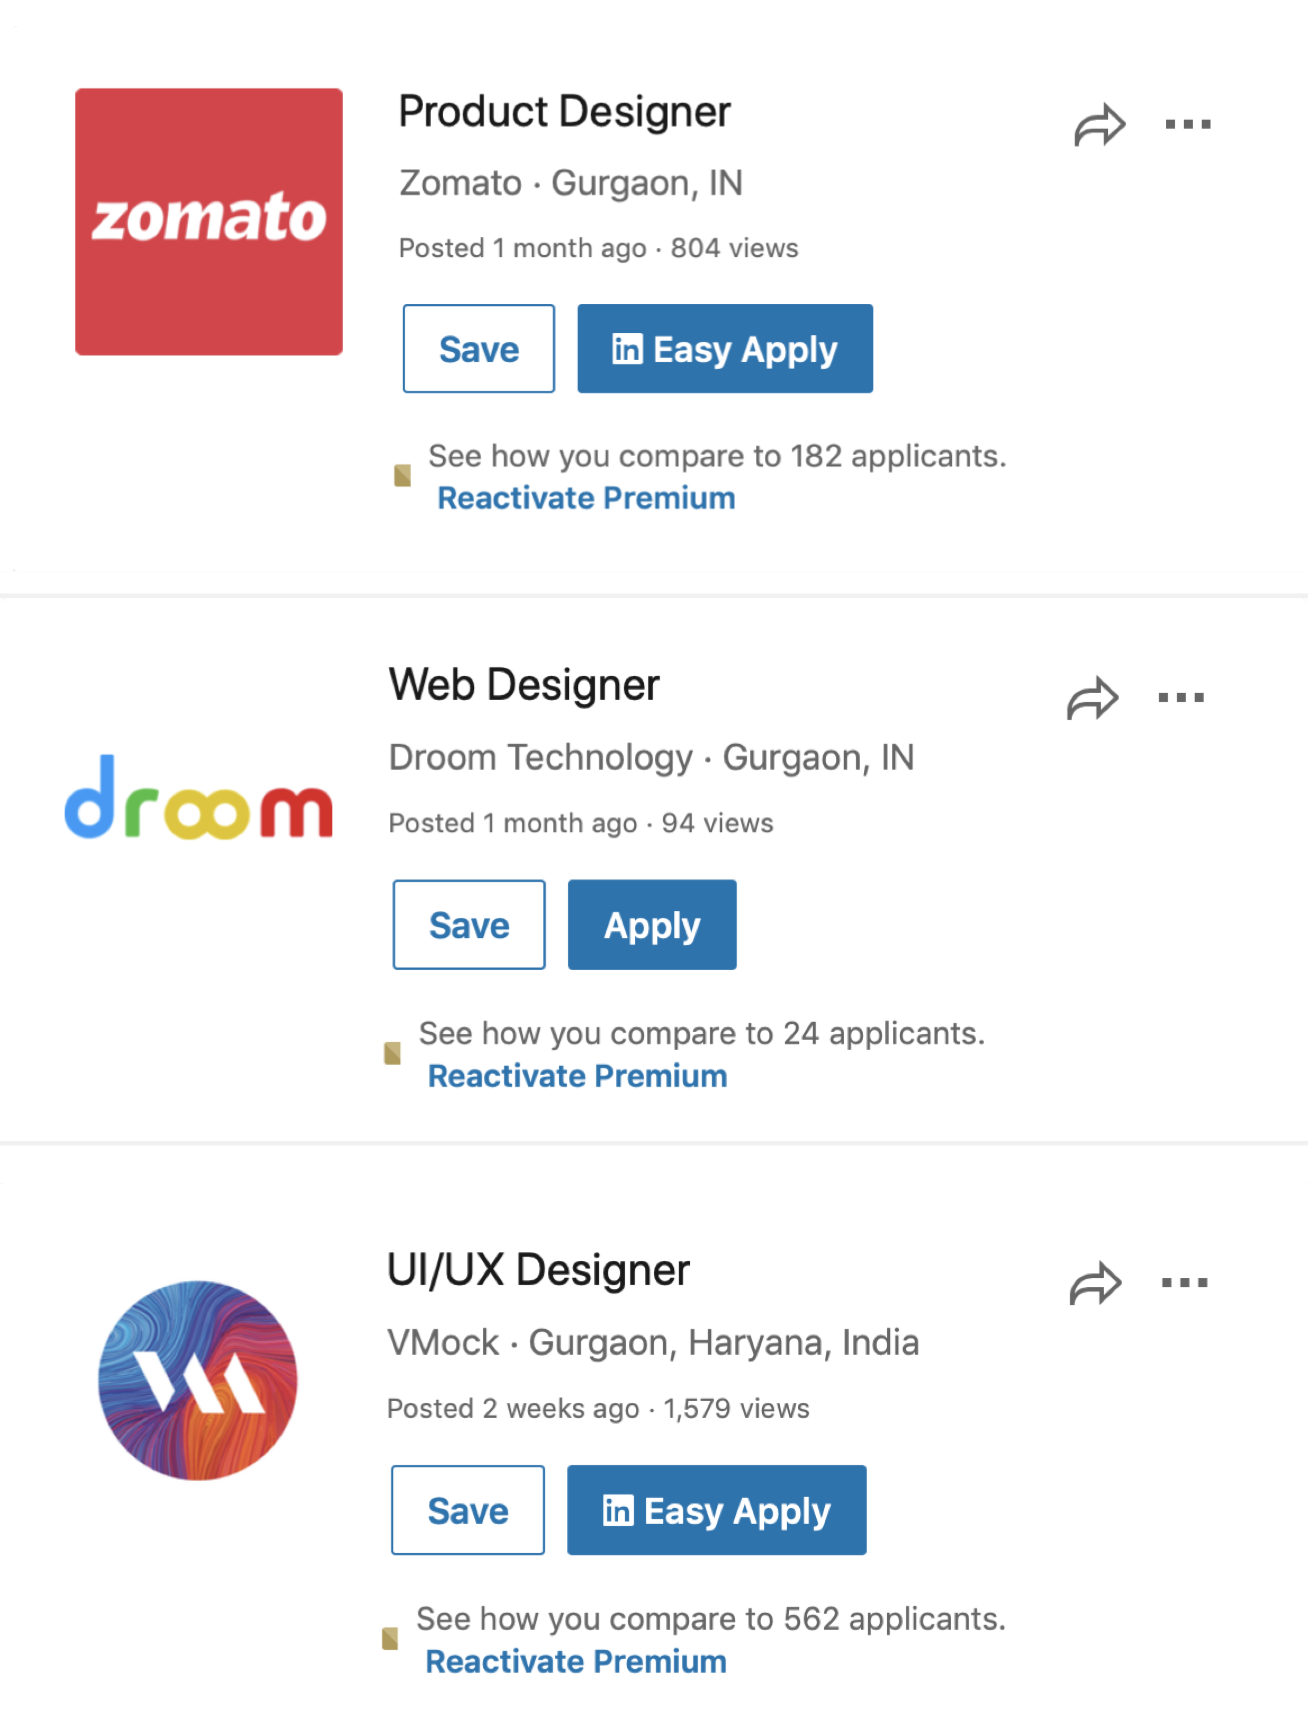 Hiring The Right Designer For Your Digital Product Web Designer Vs Ux Ui Designer Vs Product Designer By Studio Watr Medium